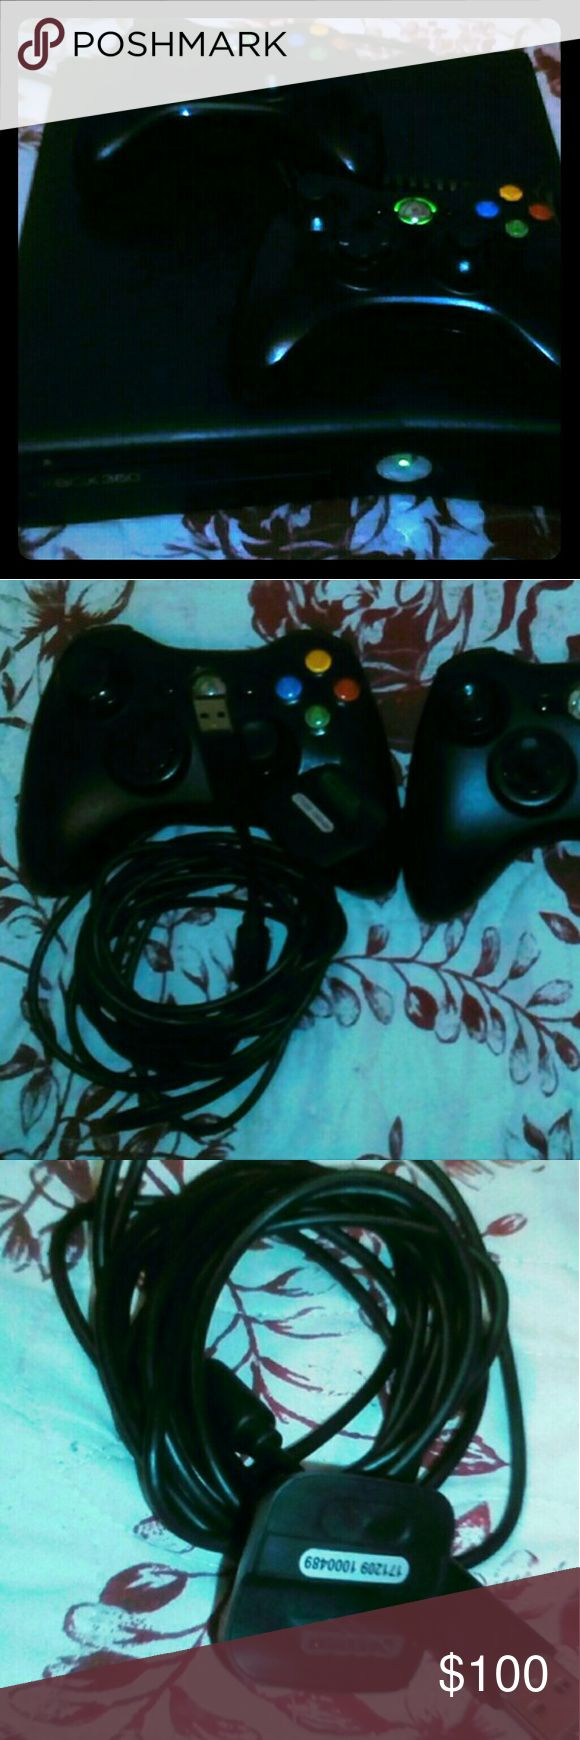 Xbox 360 console Console in good condition with two controllers, all cables, two Ni-MH battery pack batteries with charger, a microphone, and nine Xbox 360 video games. xbox 360 Other